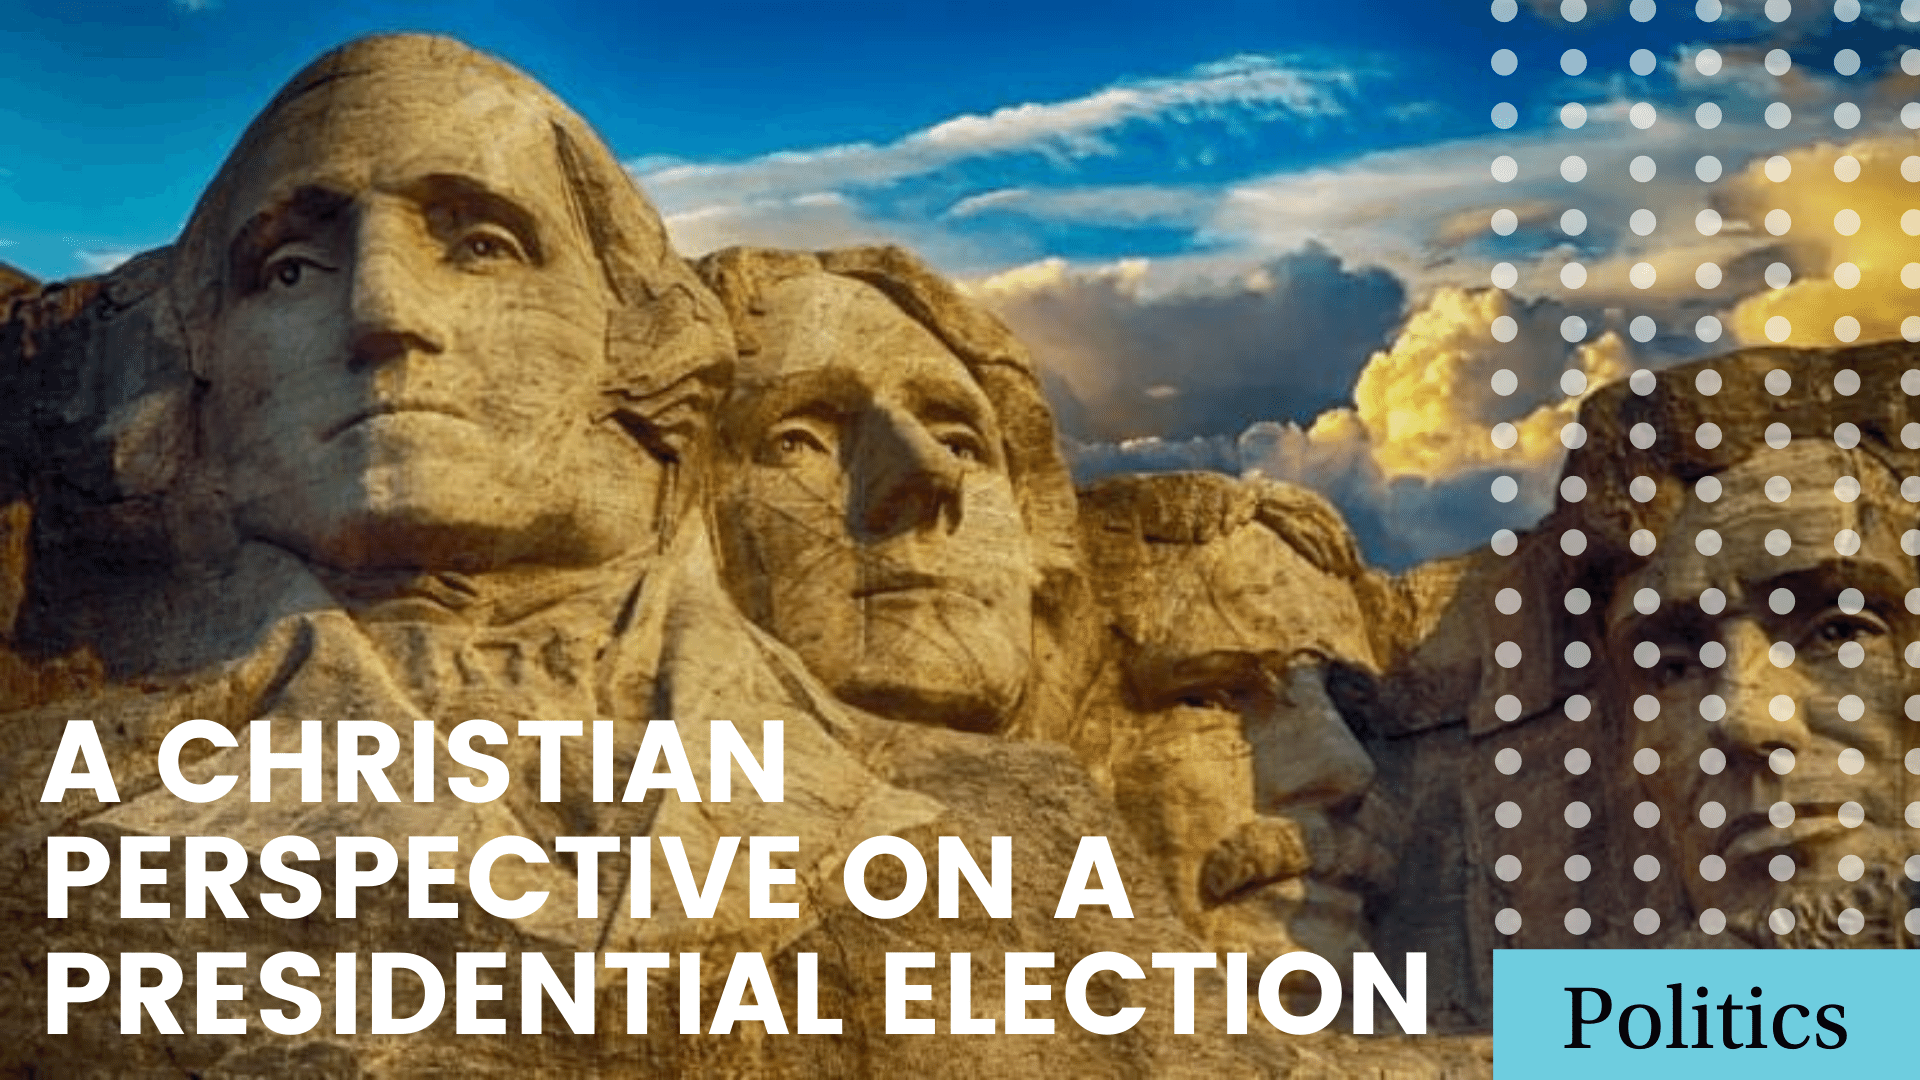 A Christian Perspective On a Presidential Election